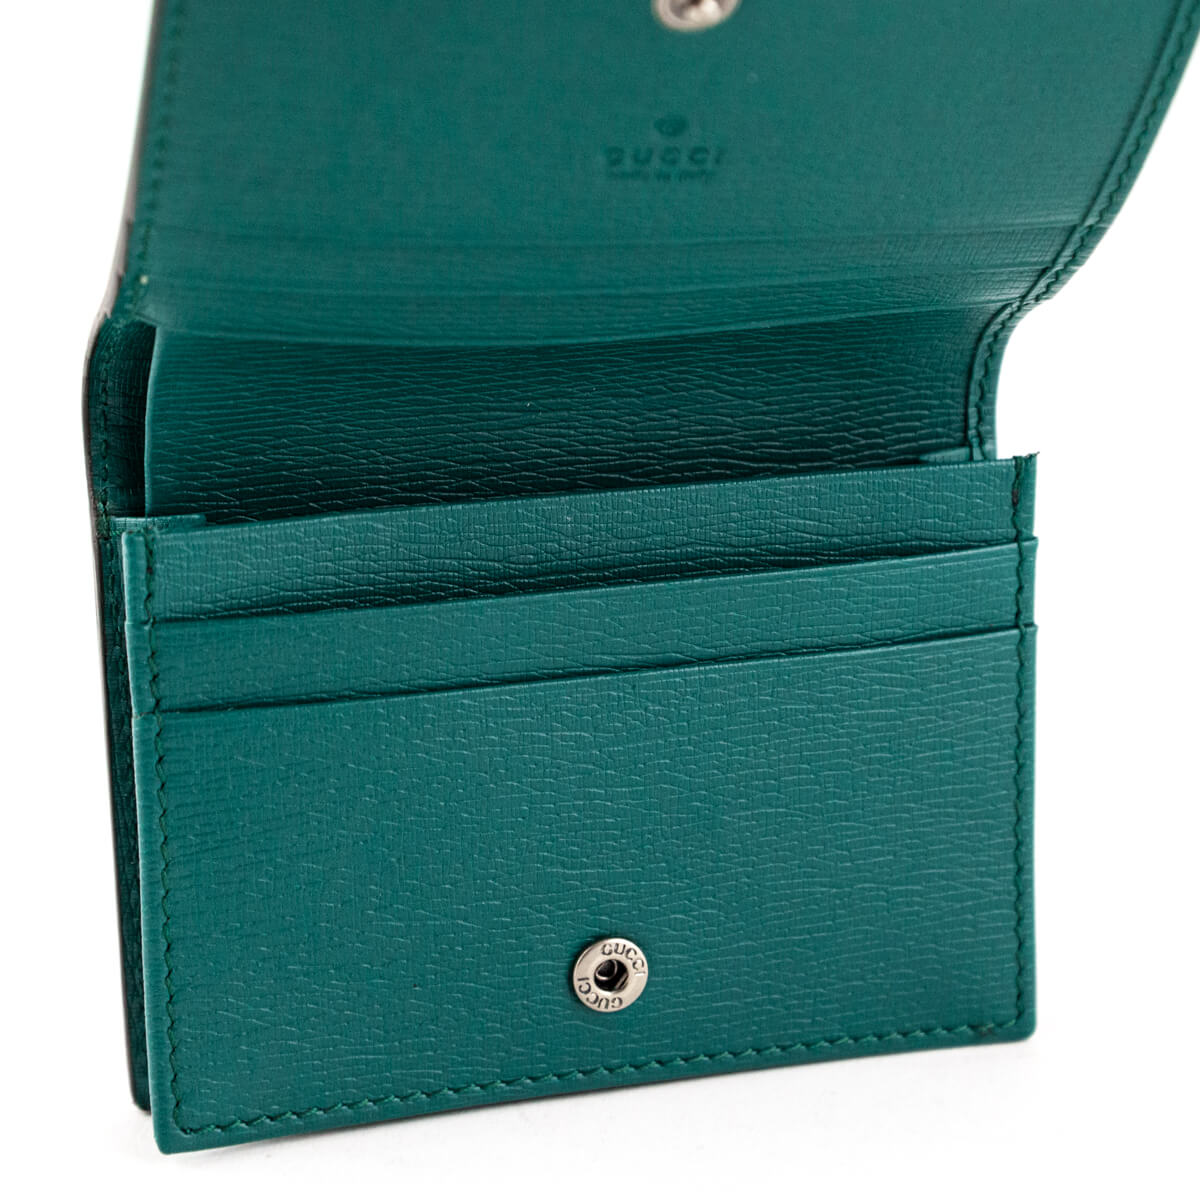 c4a603a0fee ... Gucci Teal Green Calfskin Shanghai Blooms Line Compact Wallet - LOVE  that BAG - Preowned Authentic ...